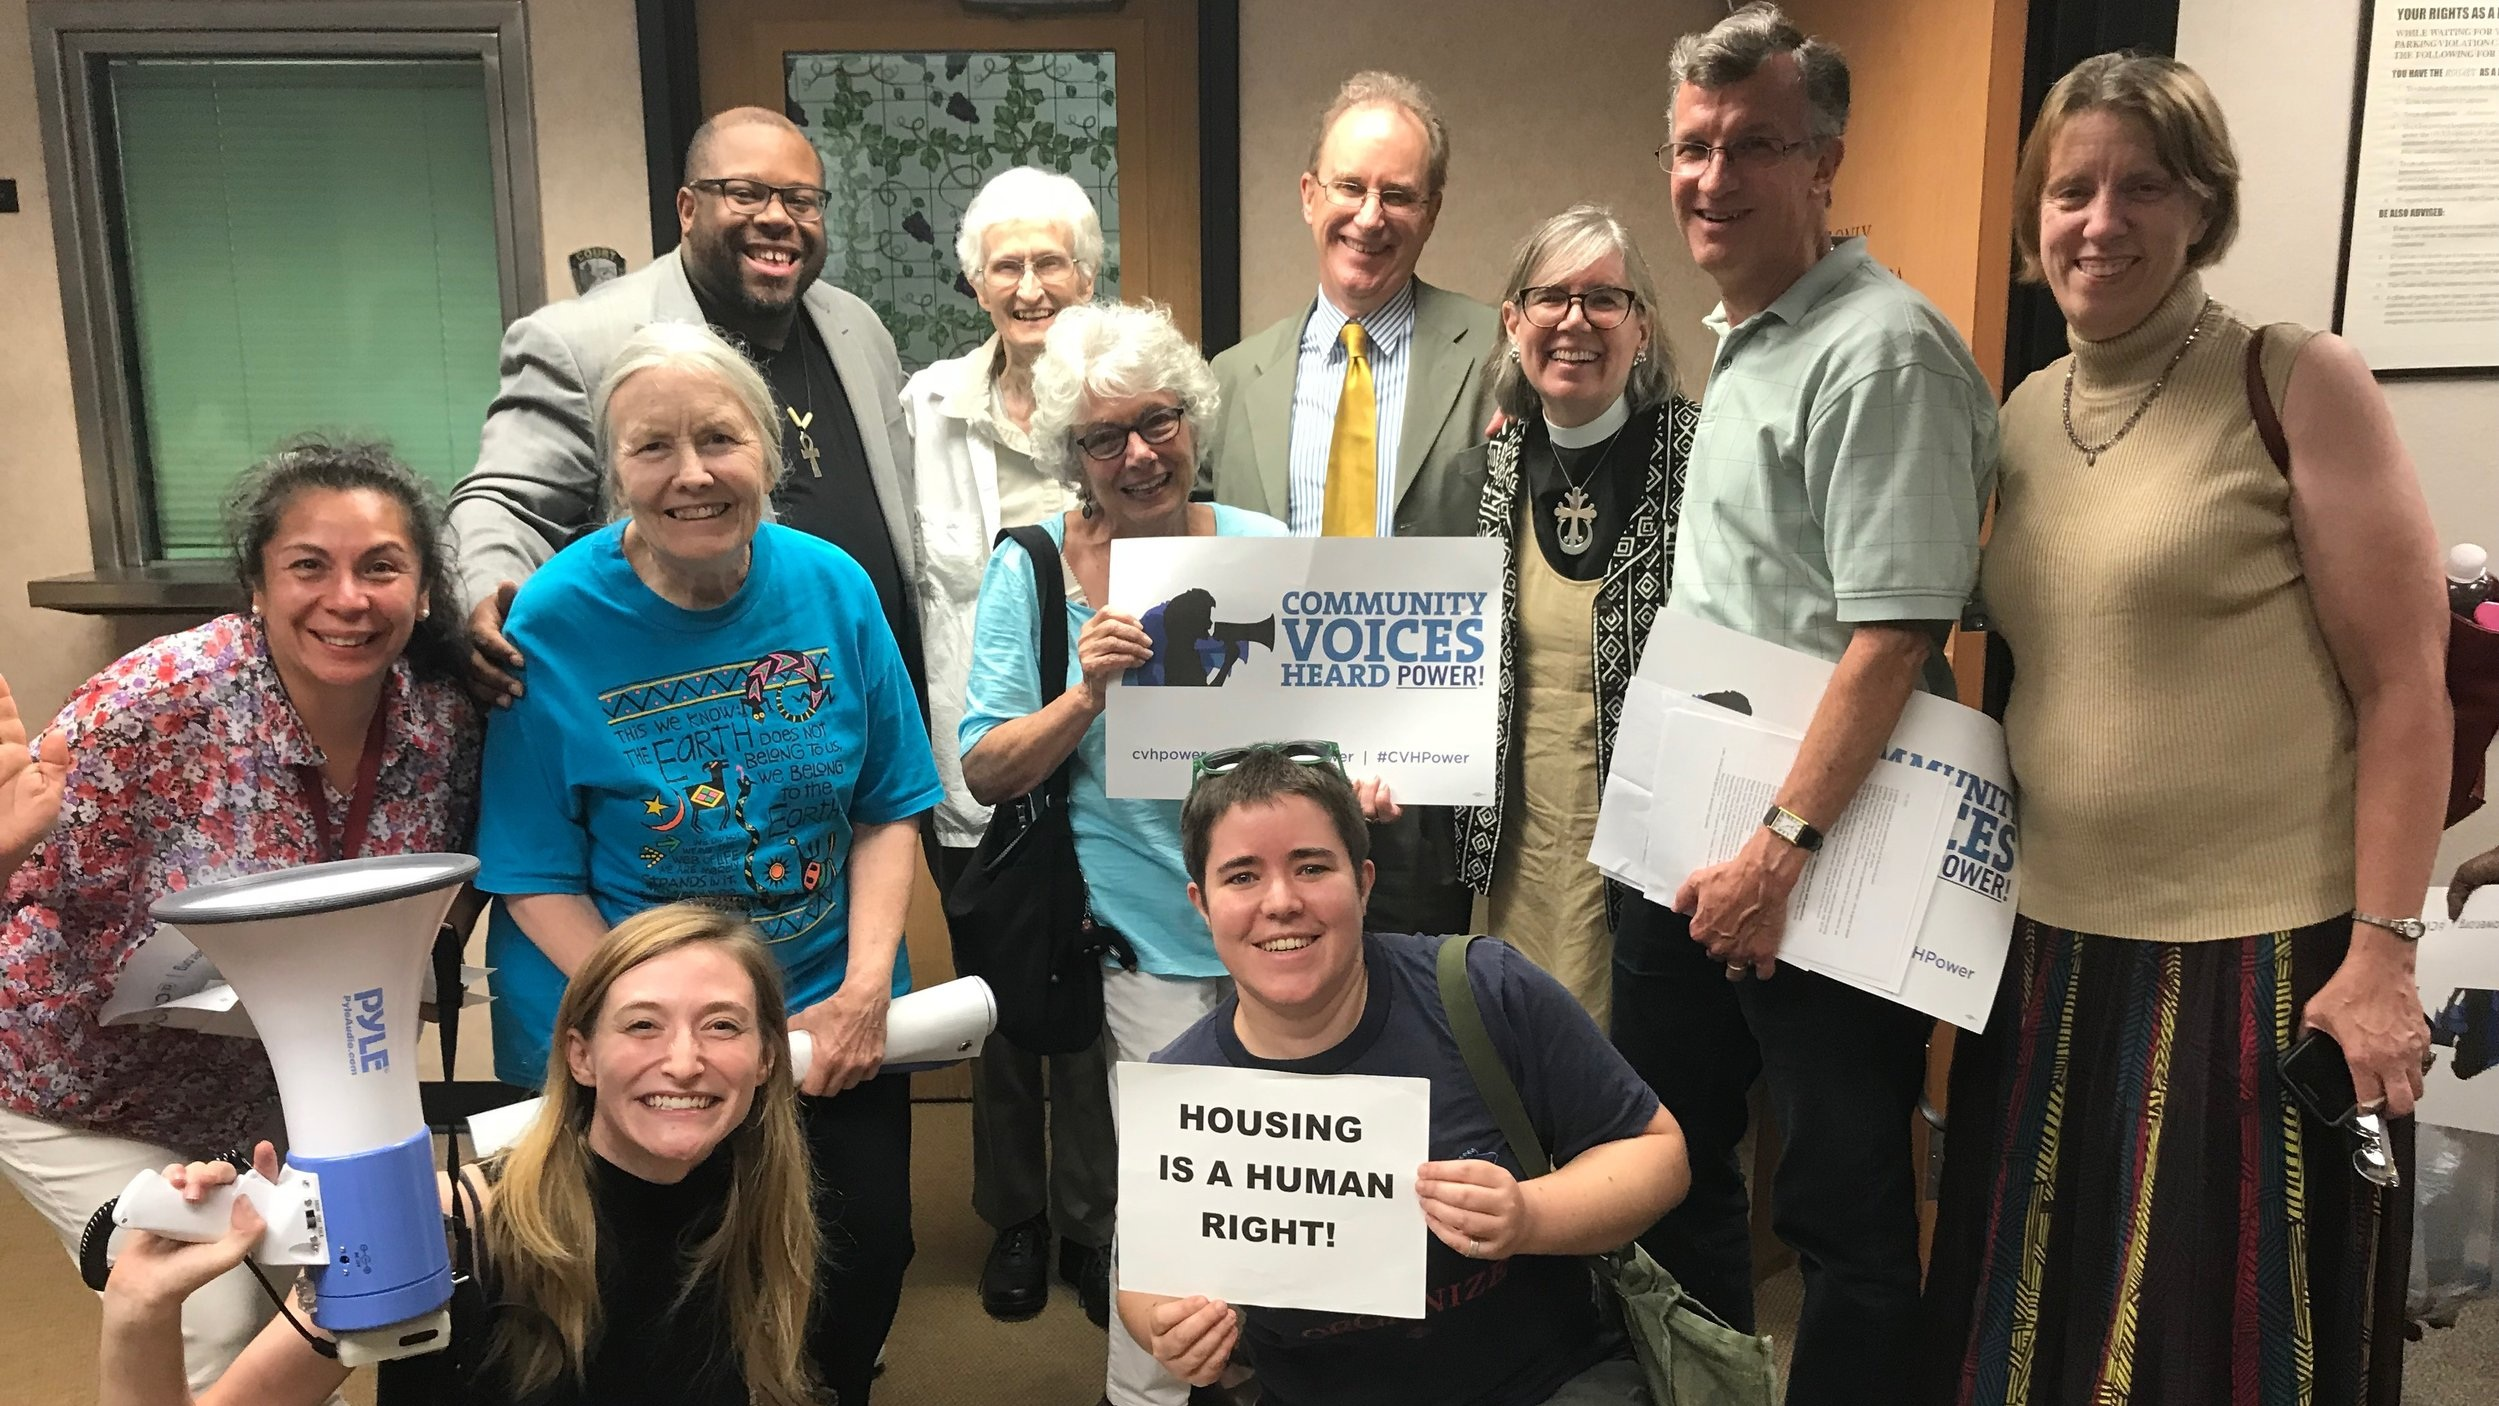 ETPA-Stable Homes campaign victory in The Village of Ossining